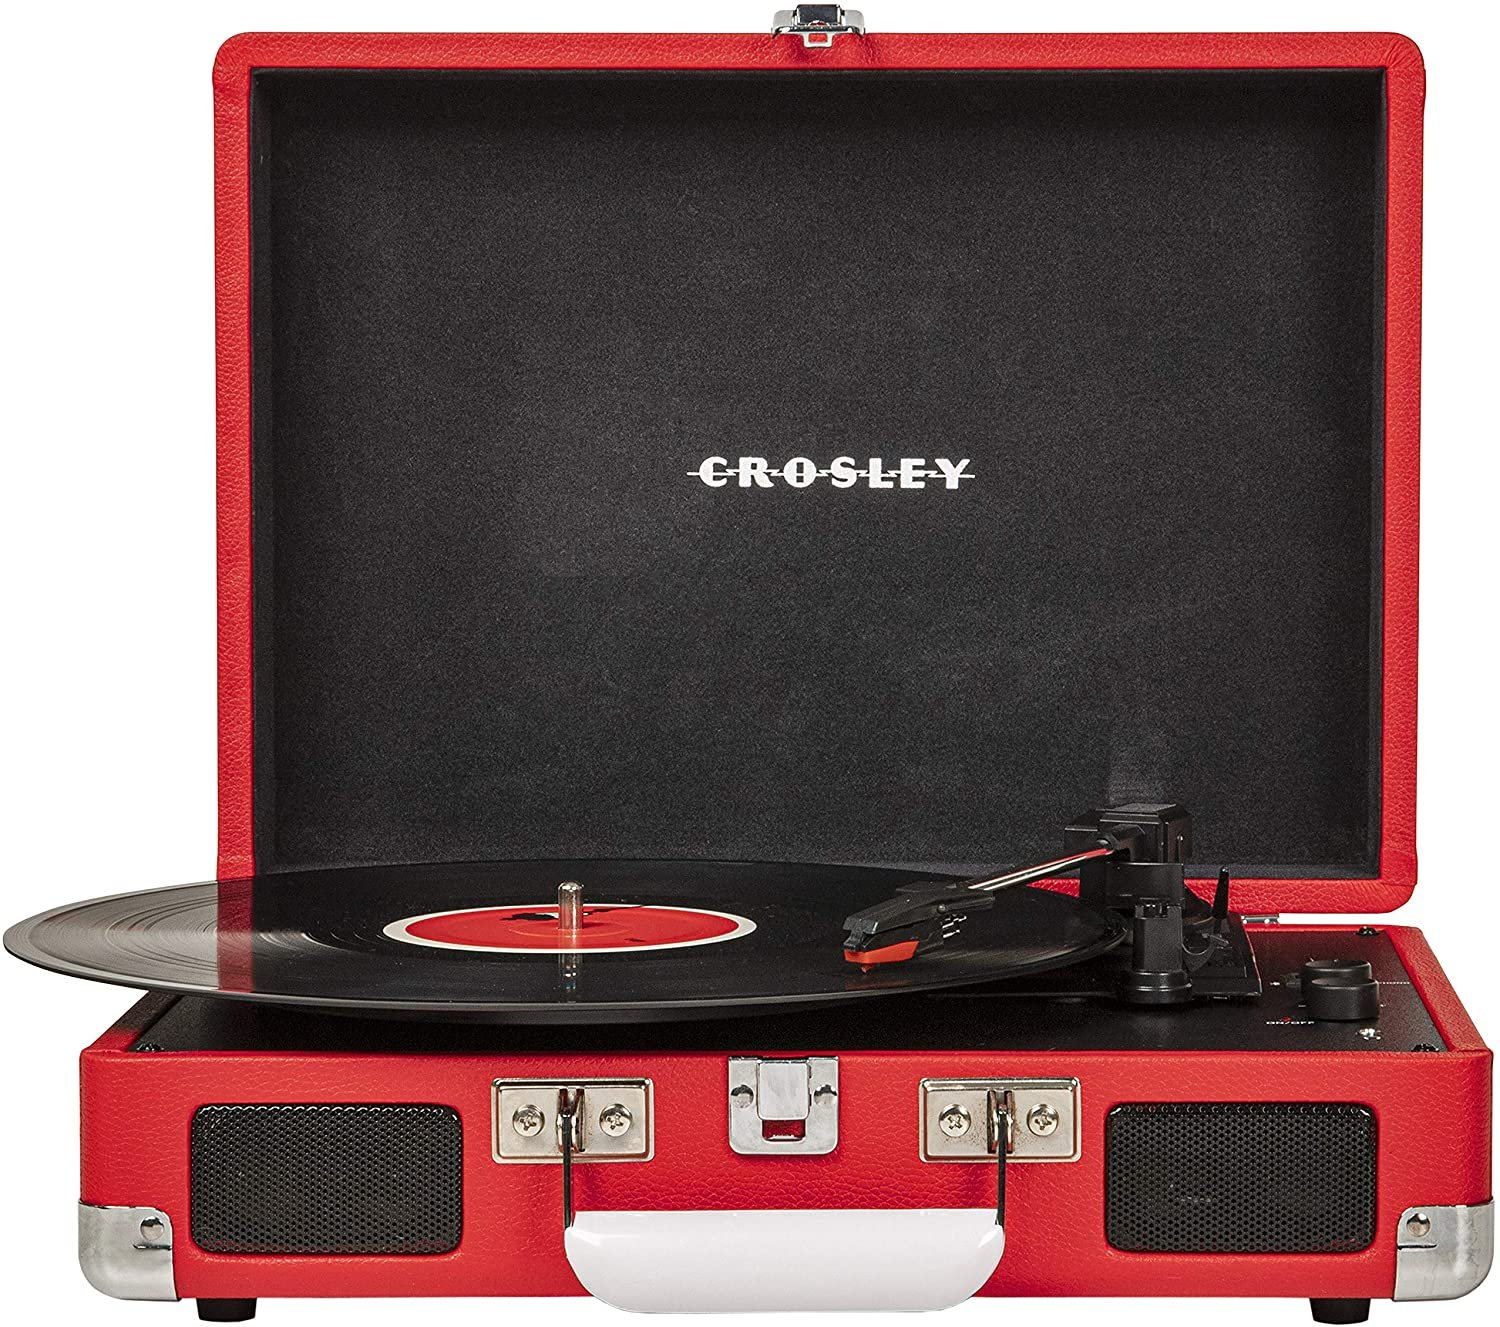 Crosley Cruiser Turntable With Bluetooth - Red